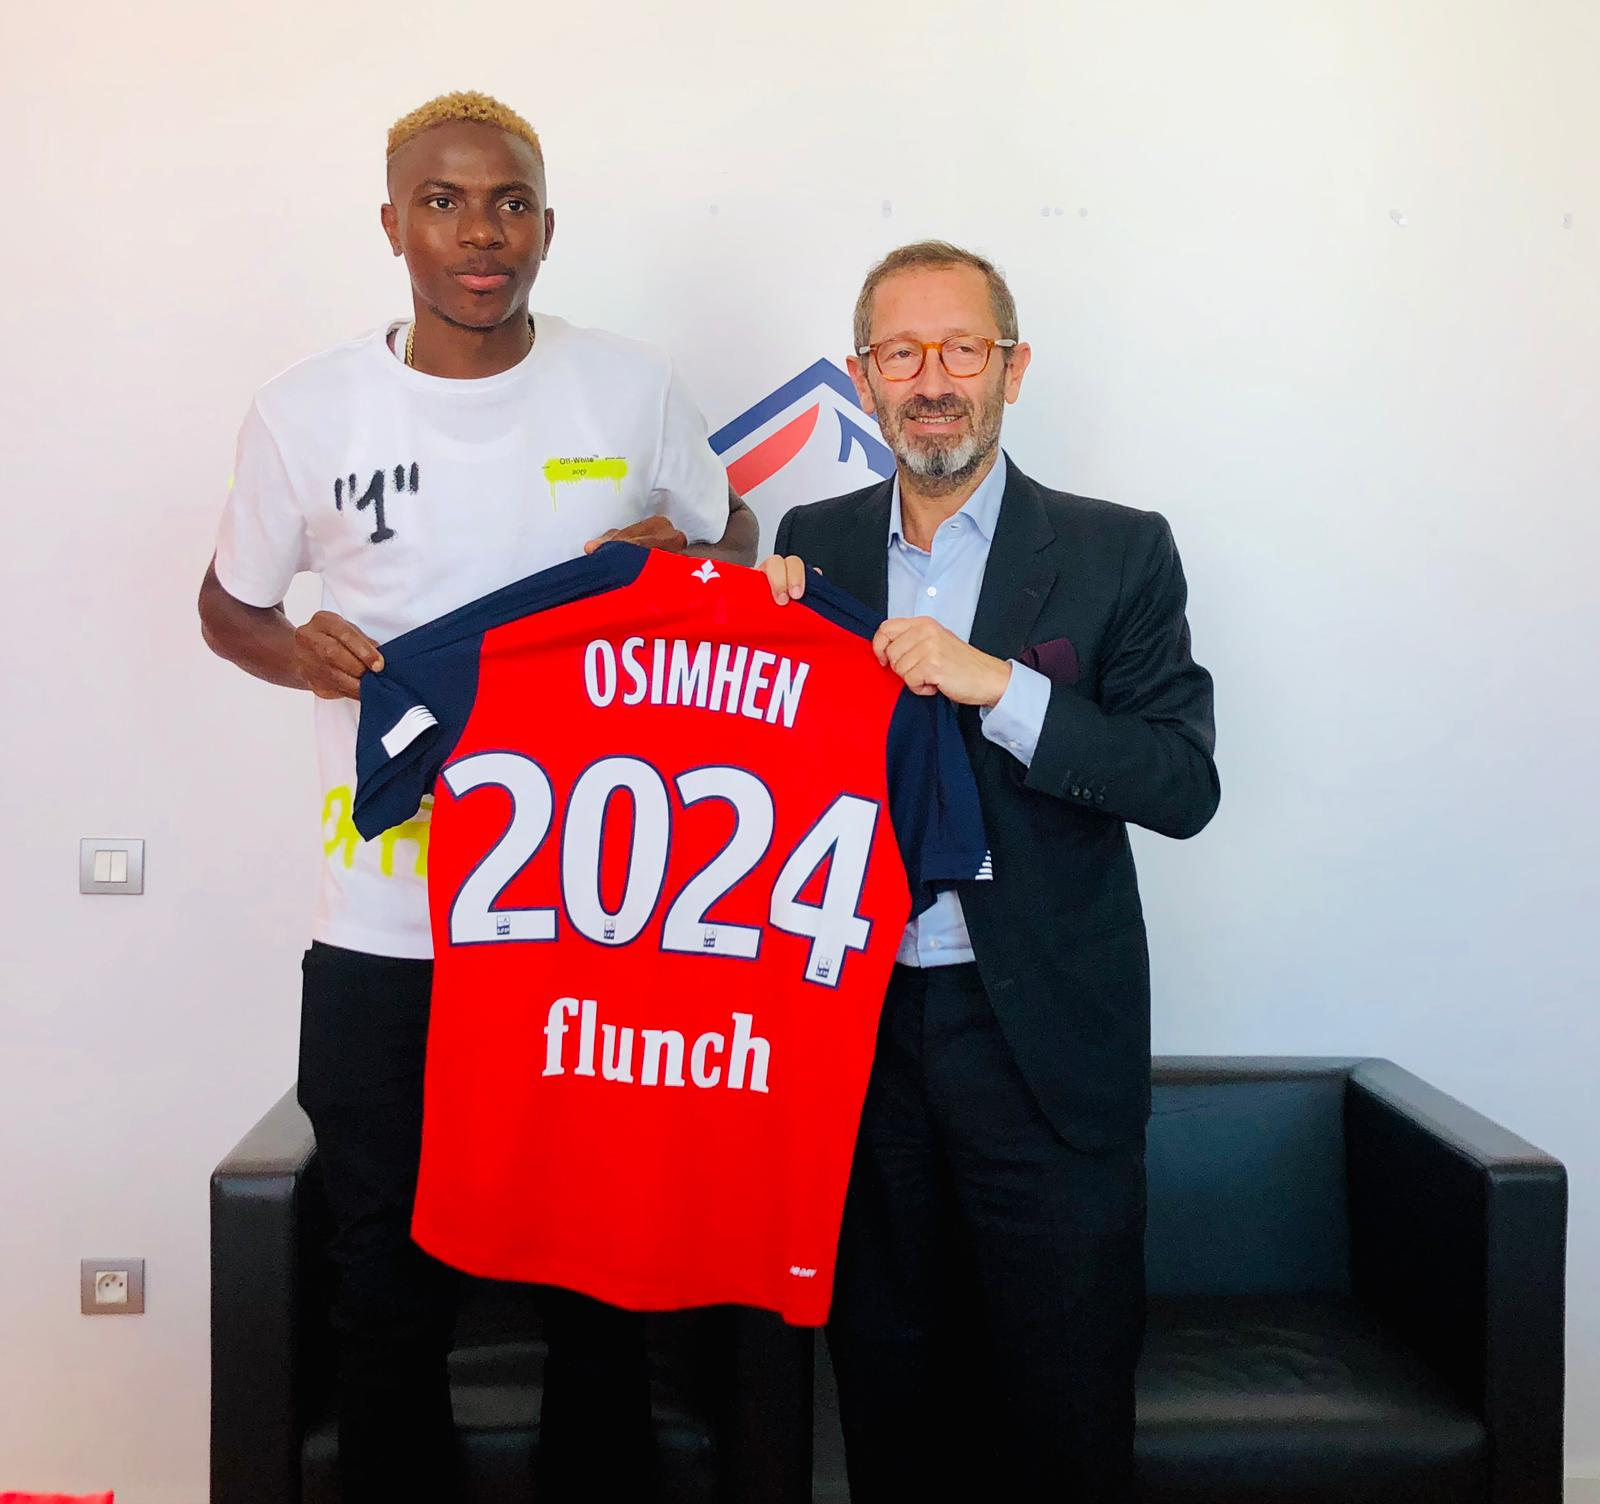 Osimhen Joins Lille On Five-Year Contract From Sporting Charleroi